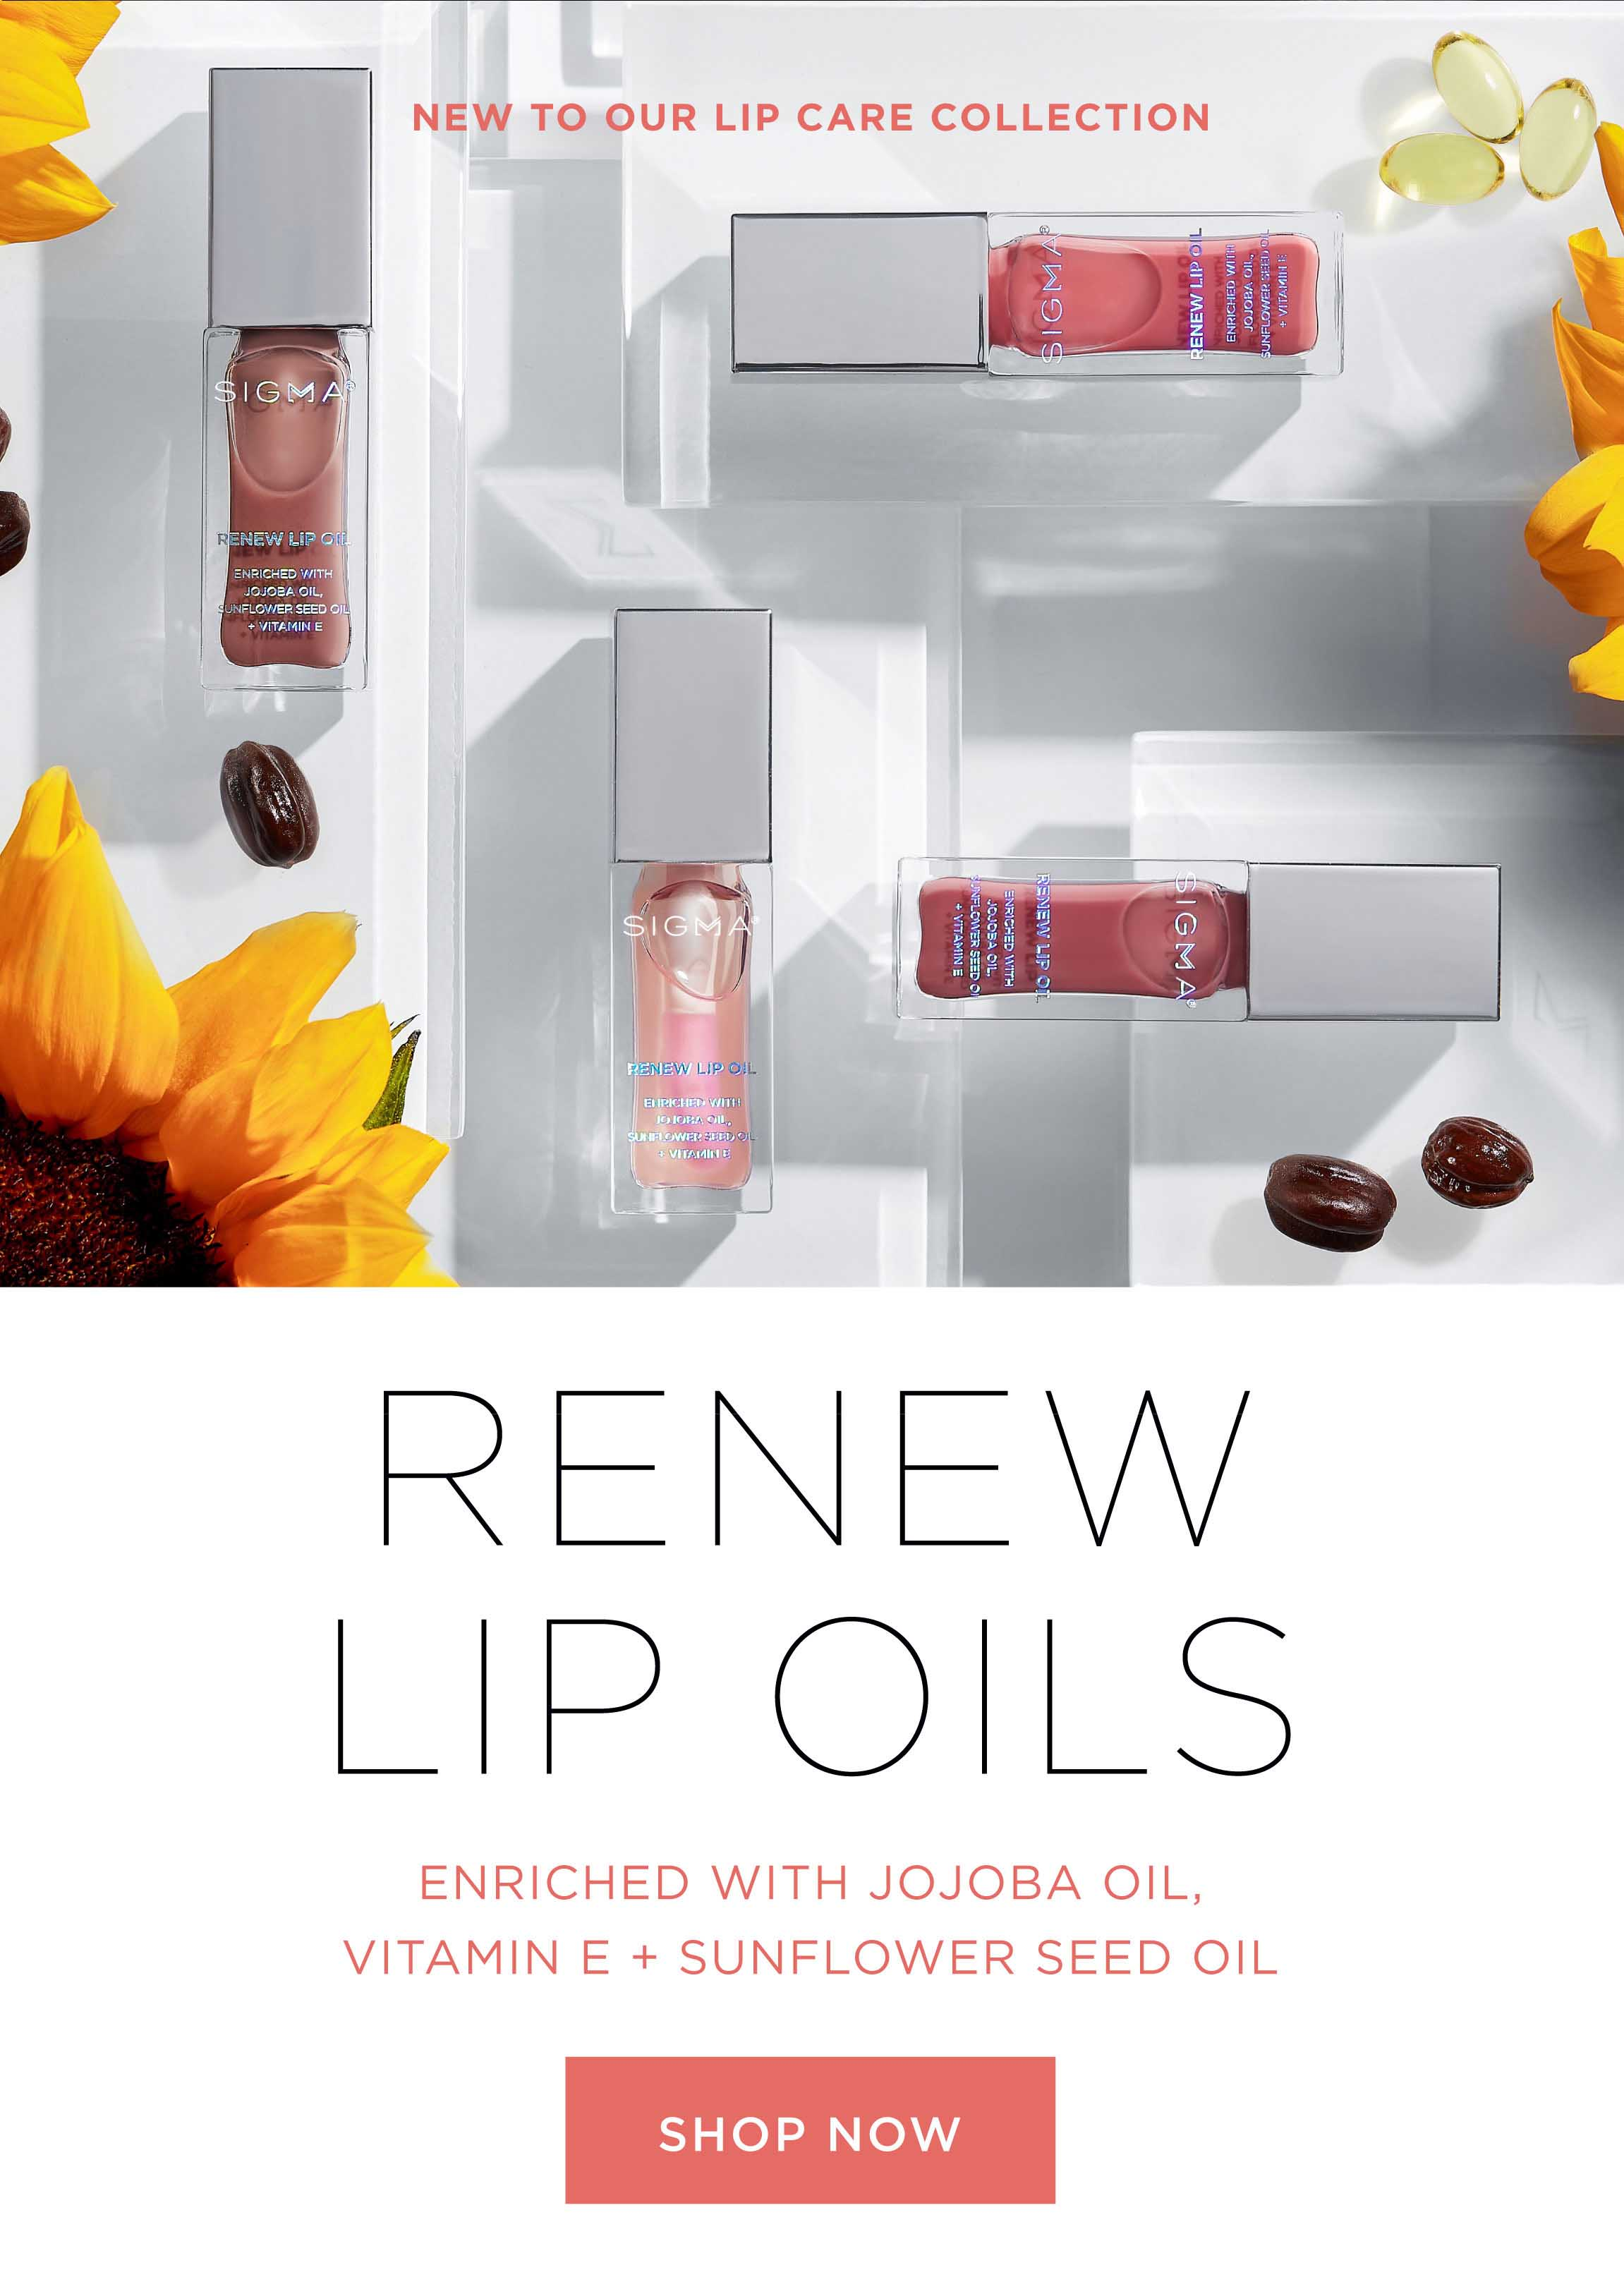 NEW TO OUR LIP CARE COLLECTION RENEW LIP OILS